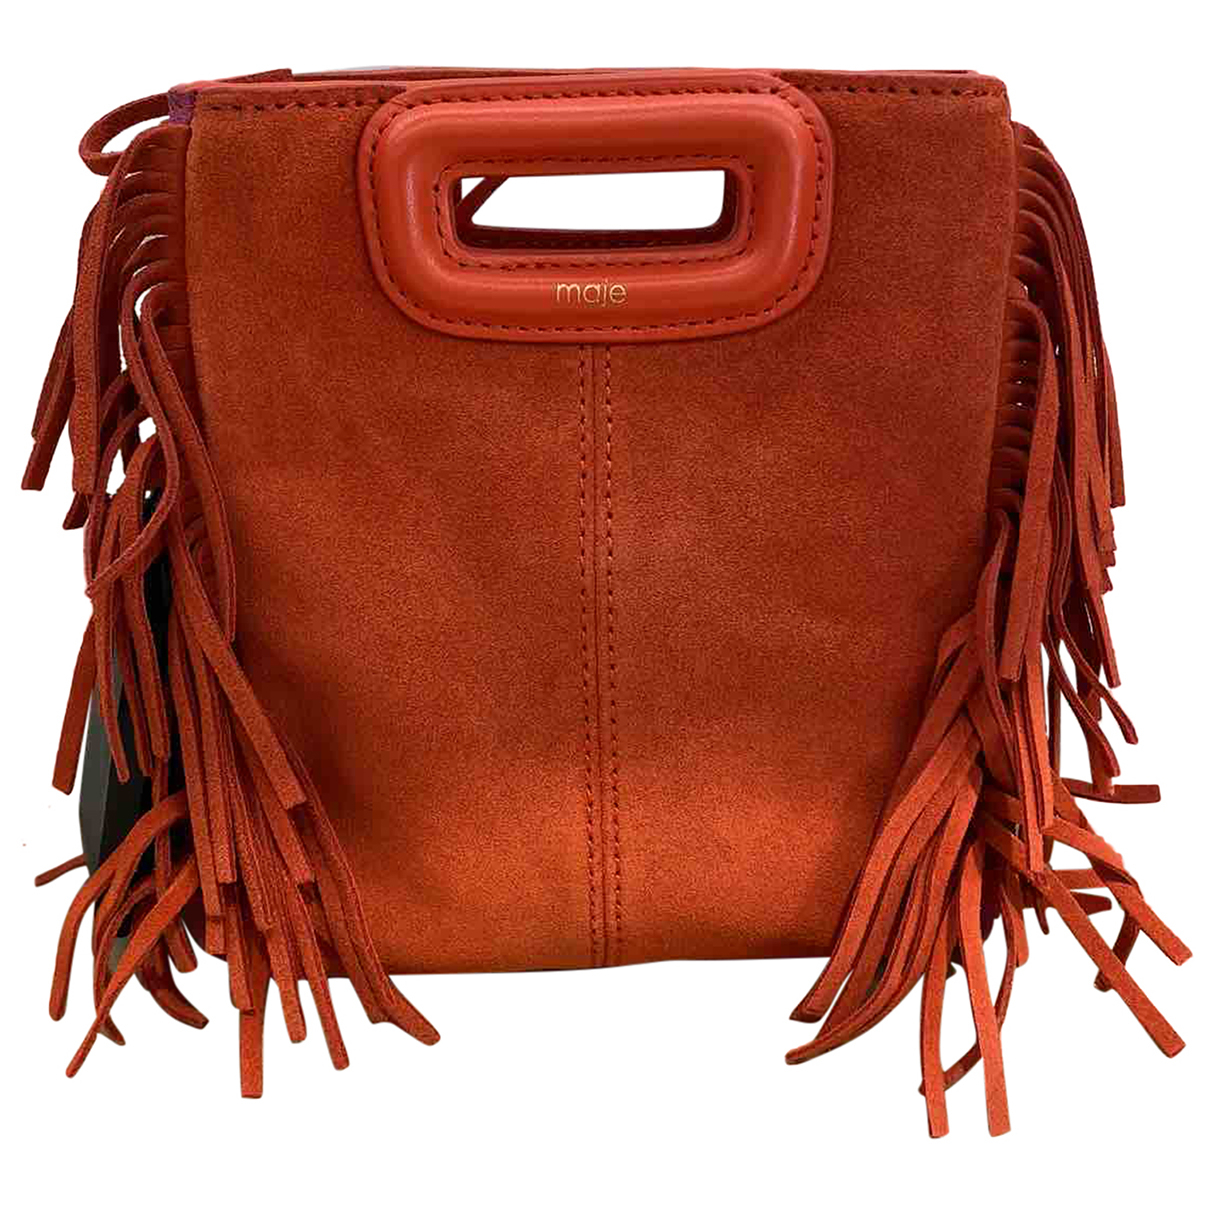 Maje Sac M Clutch in  Bunt Veloursleder